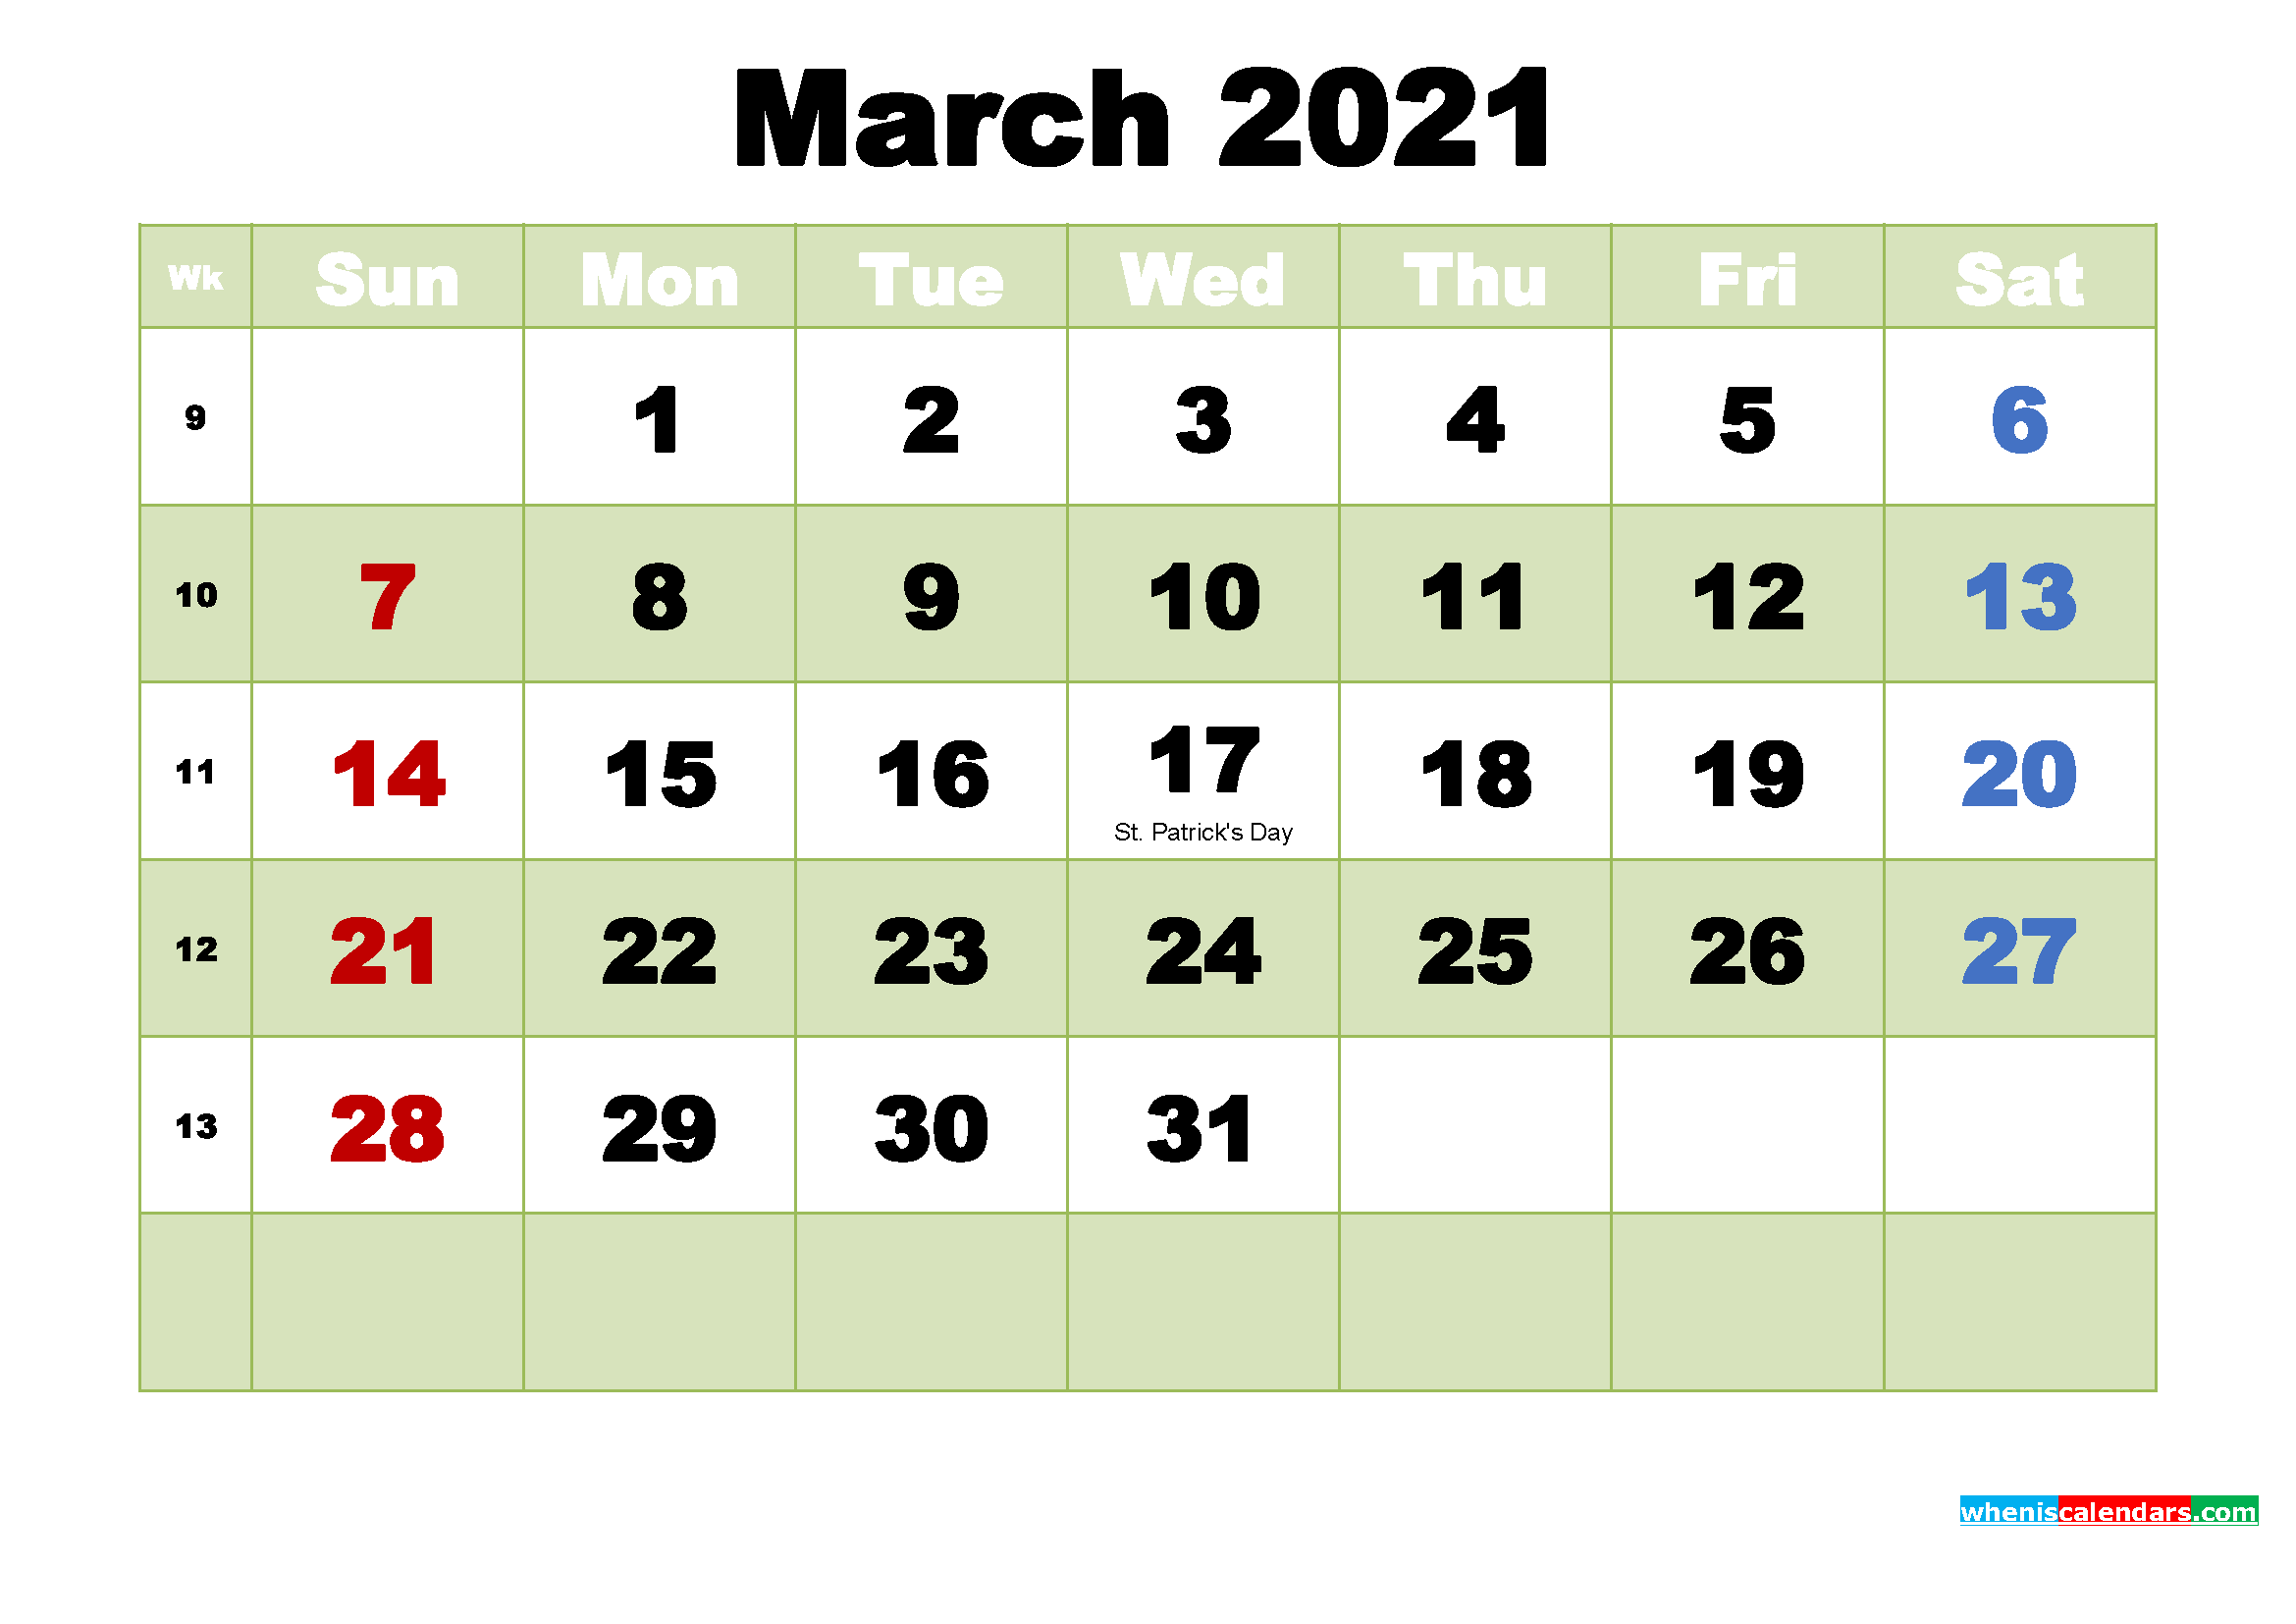 Free March 2021 Printable Calendar Template Word, PDF